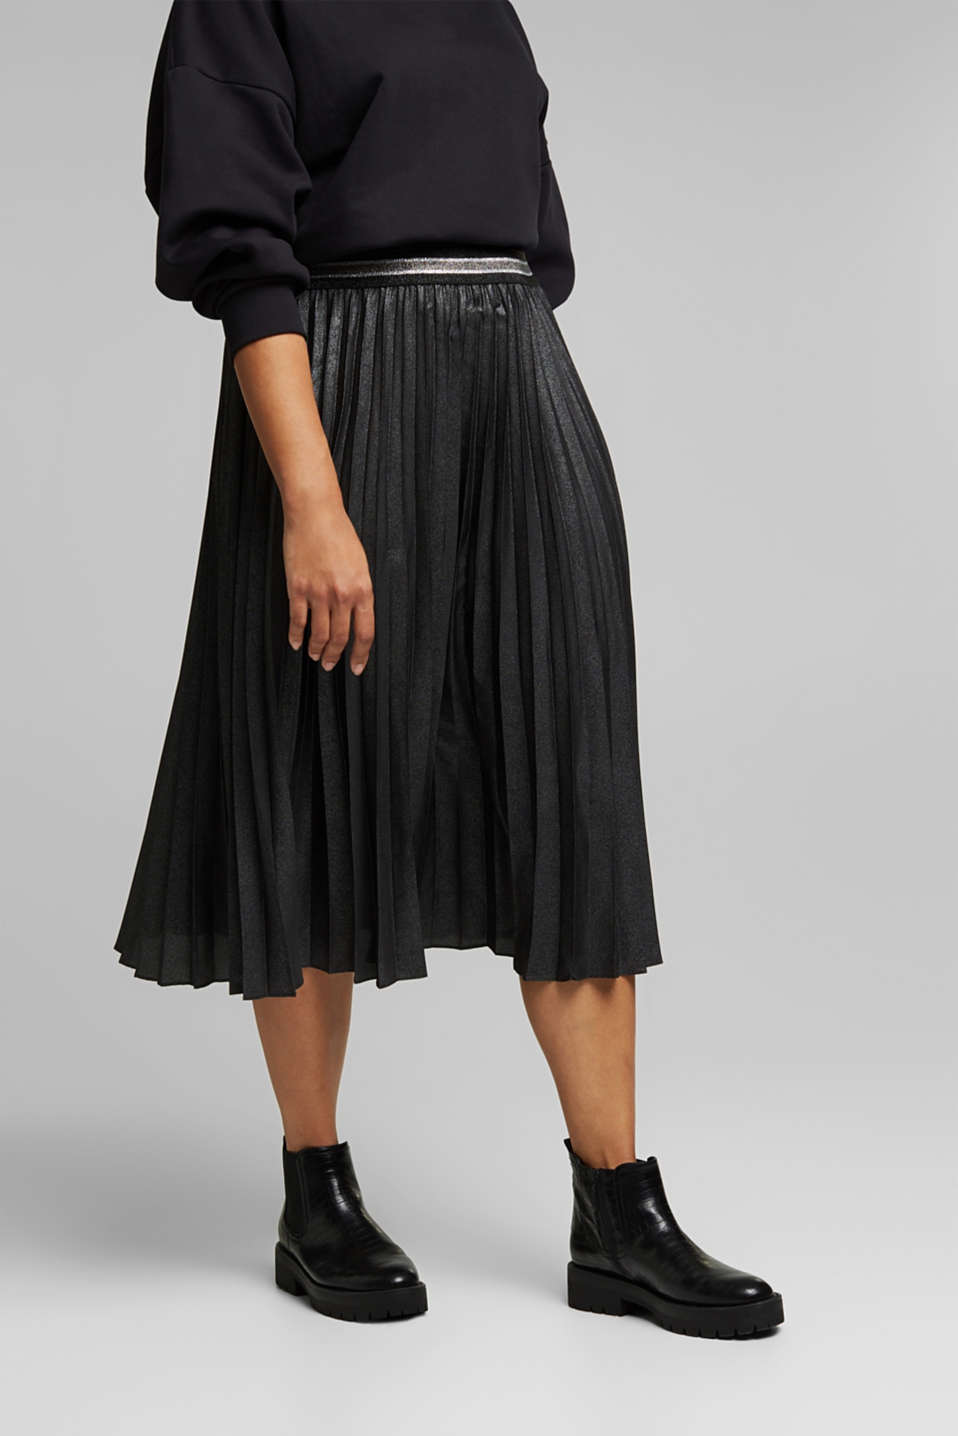 Esprit - CURVY pleated skirt with glitter, recycled